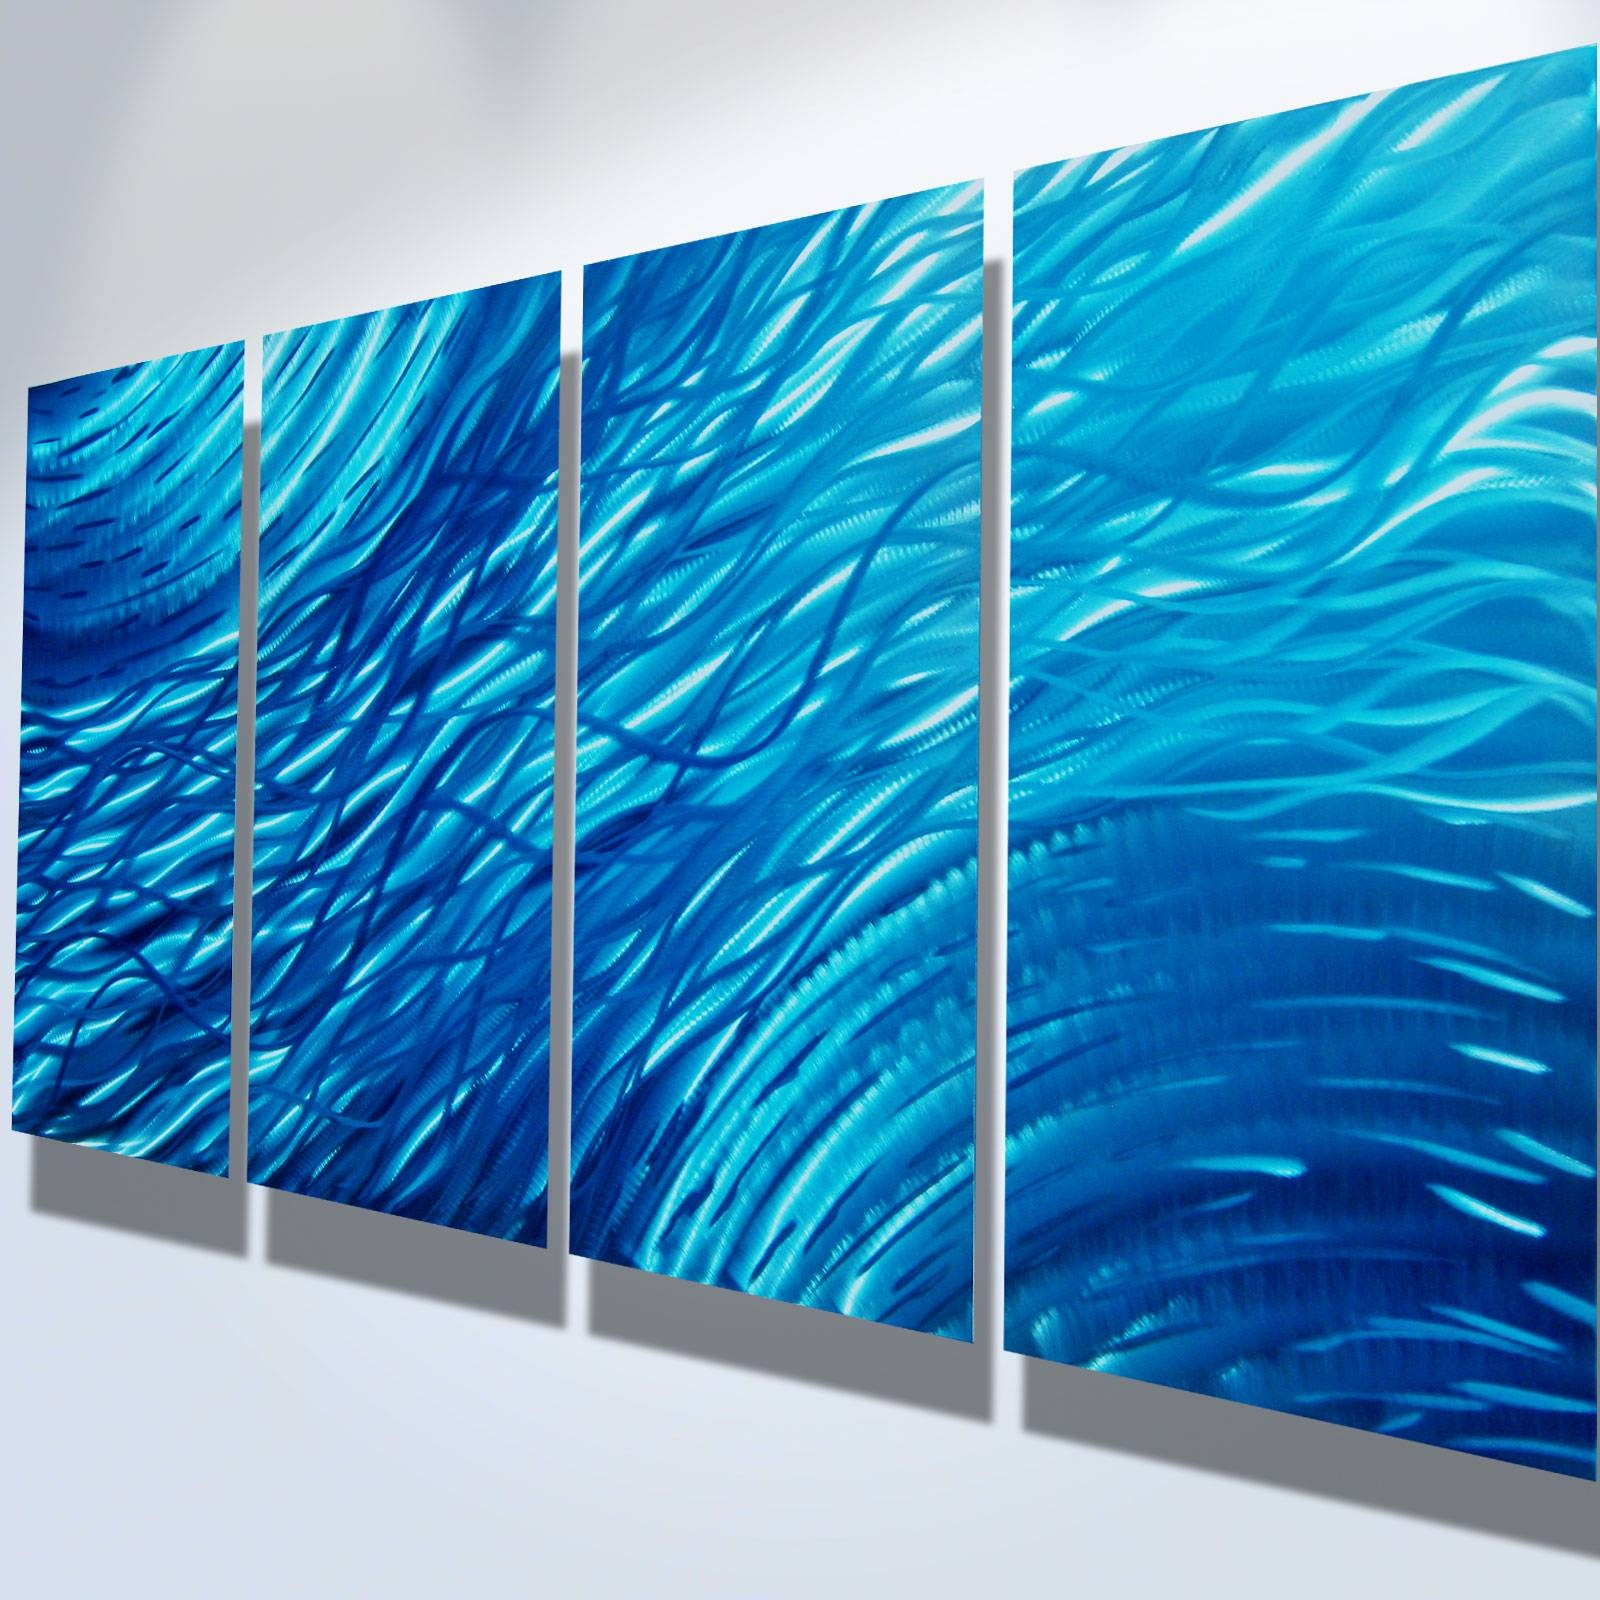 Ocean Metal Wall Art Abstract Contemporary Modern Decor Throughout Newest Turquoise Metal Wall Art (View 13 of 20)